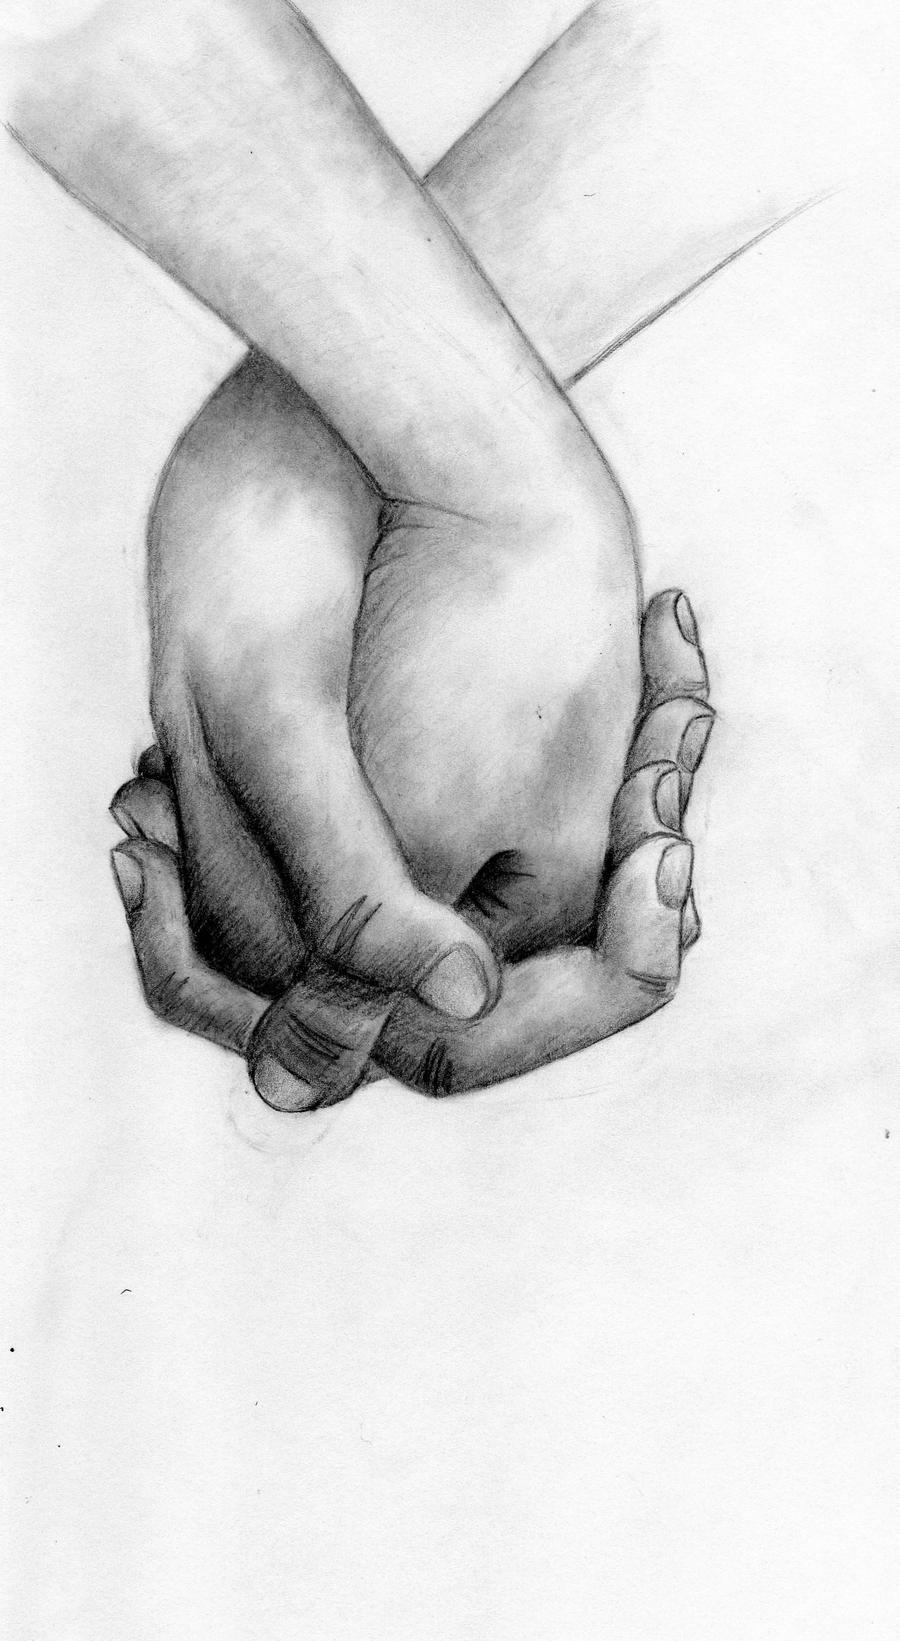 Holding Hands by mayastoso on DeviantArtDrawings Of Hands Holding Each Other